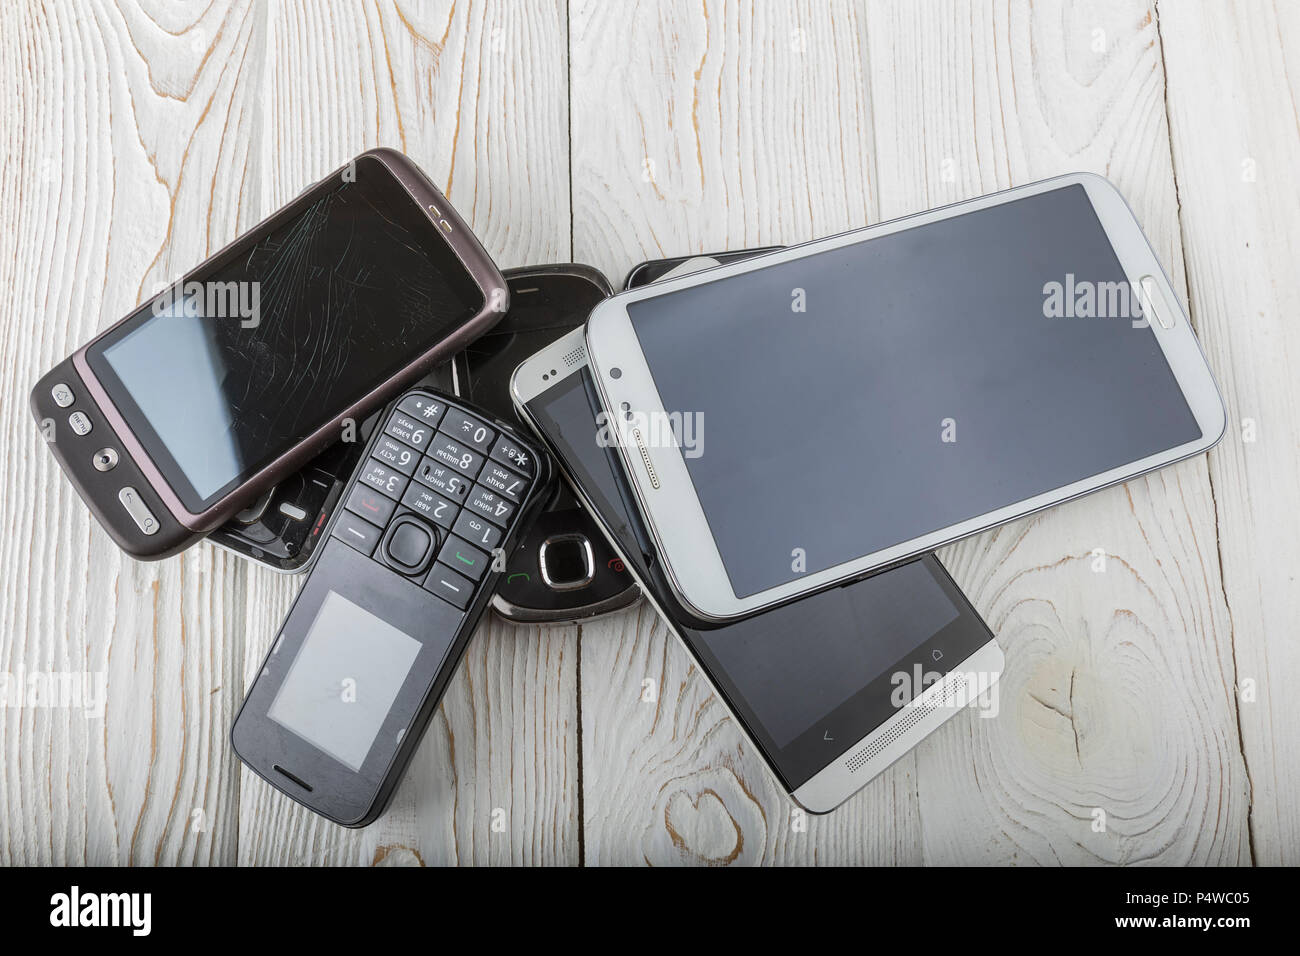 Old mobile phone. - Stock Image